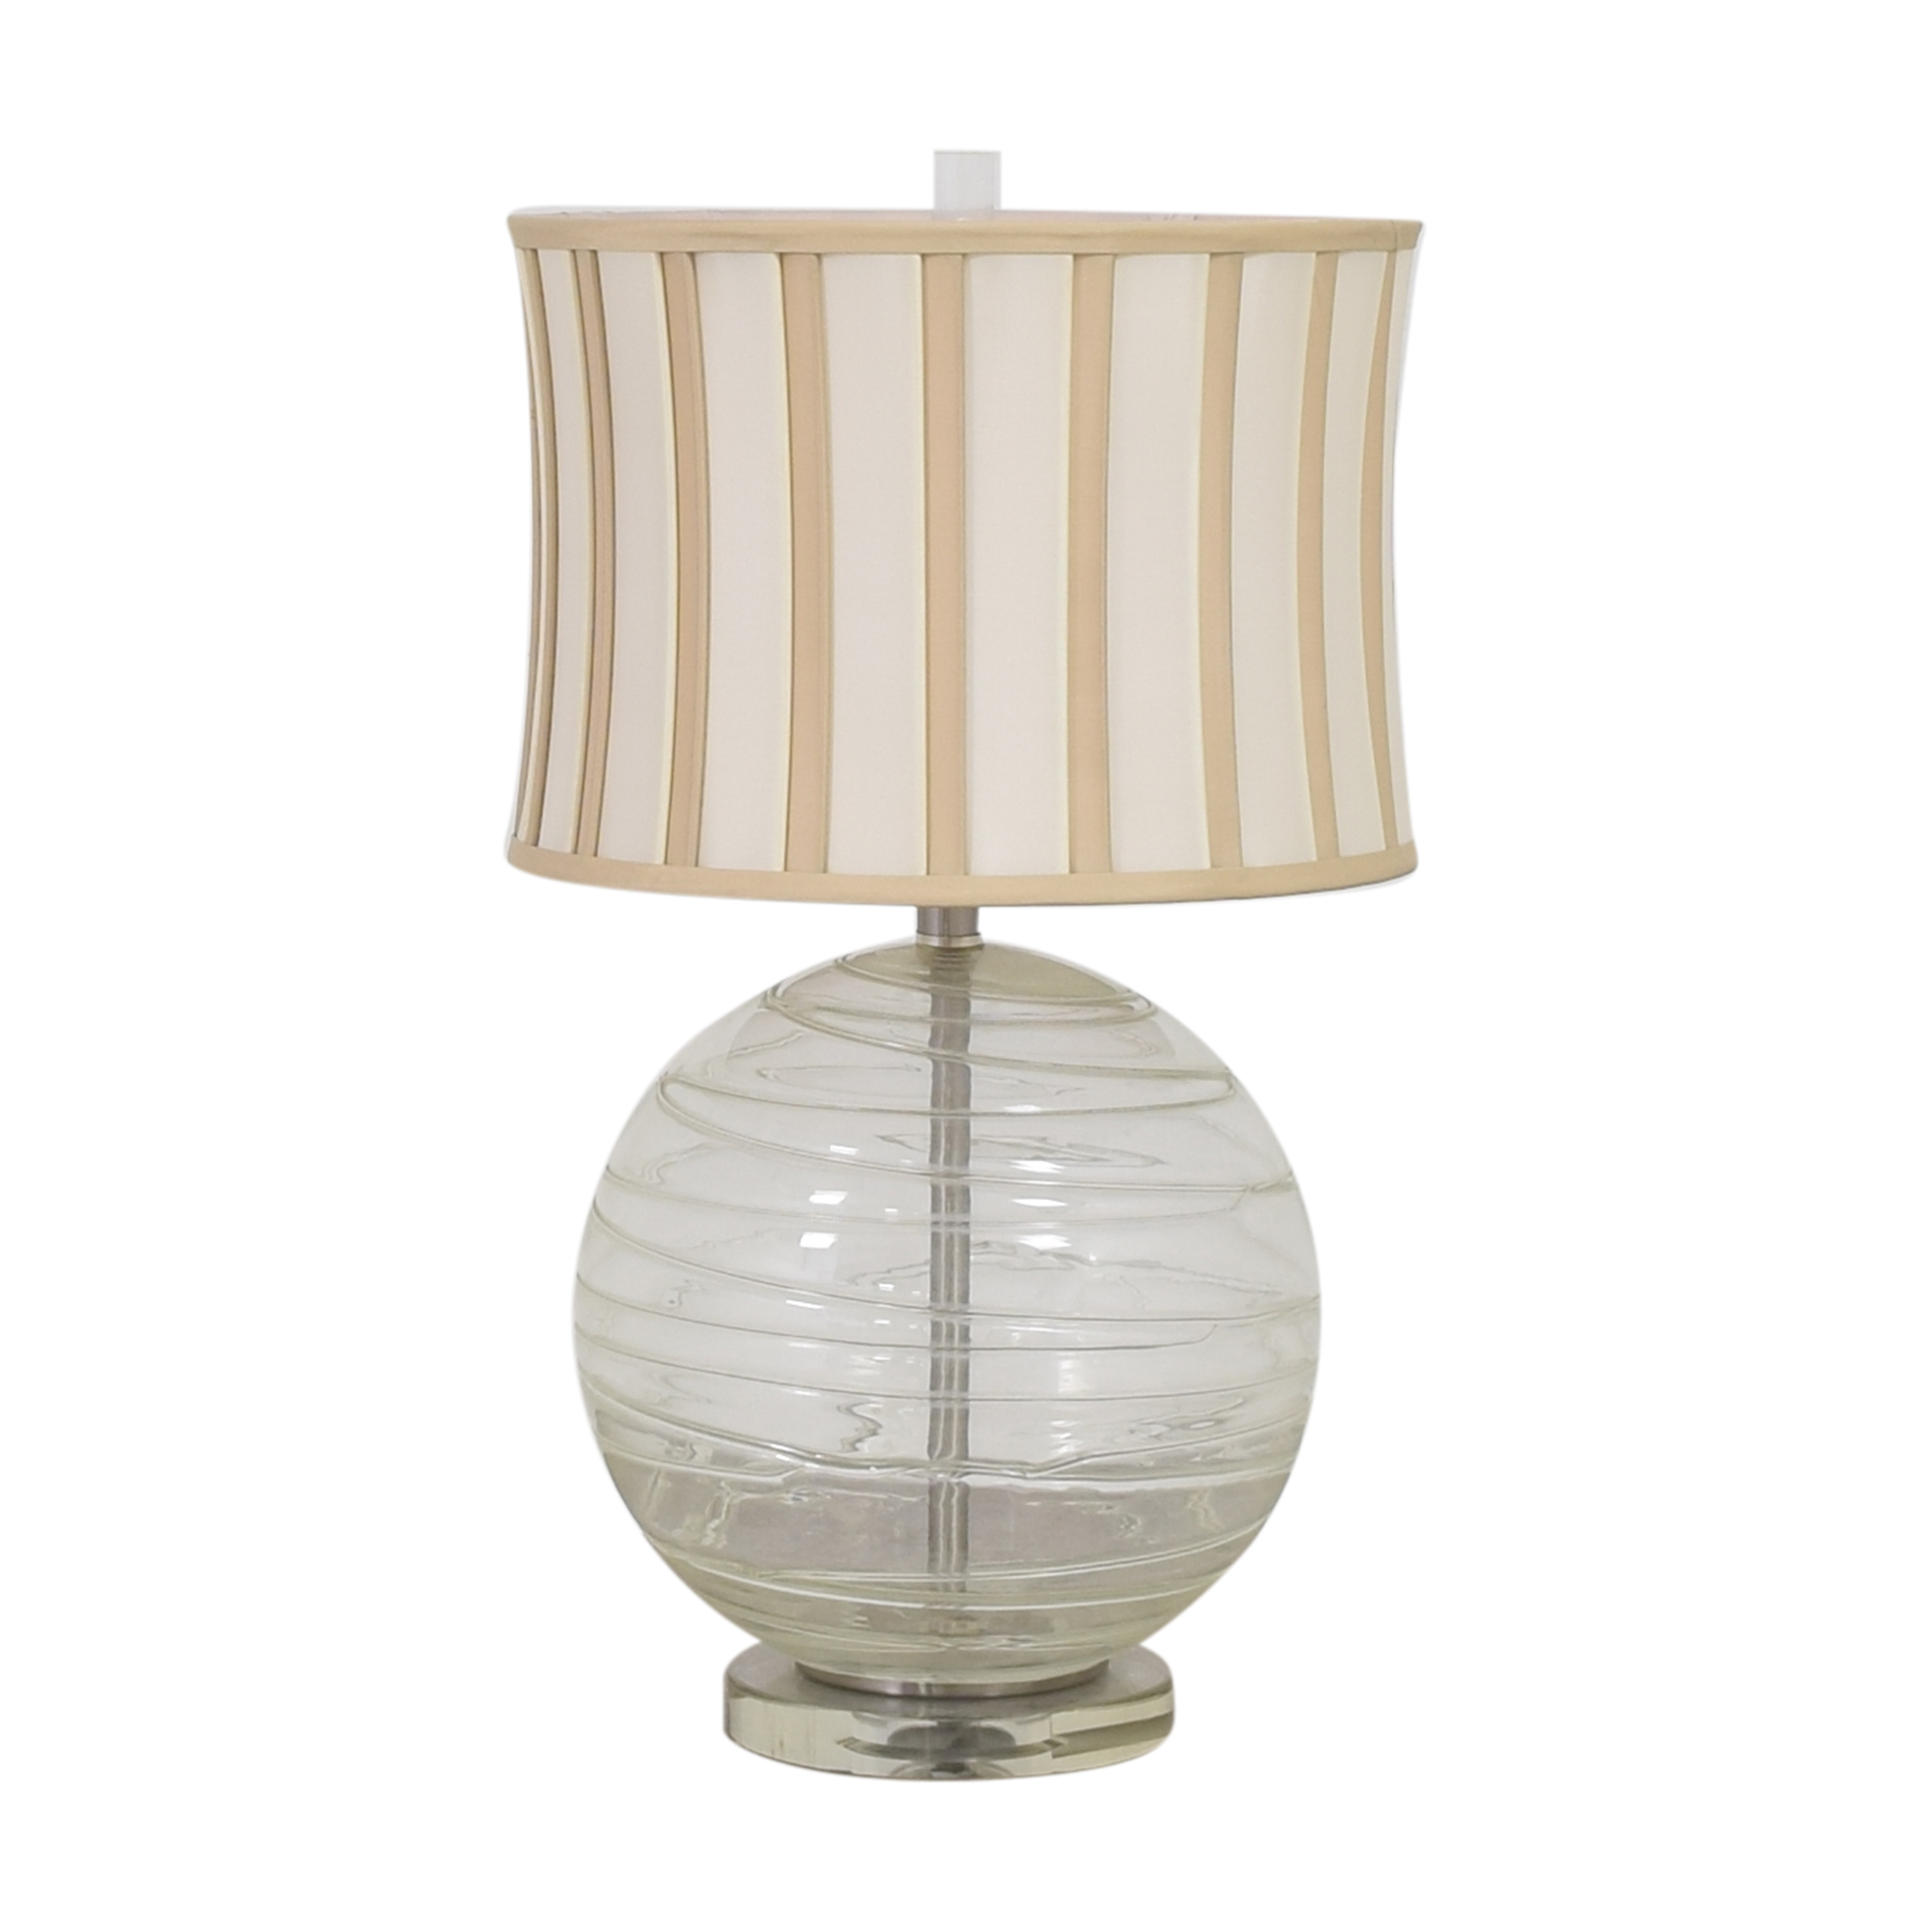 Striped Orb Lamp ma